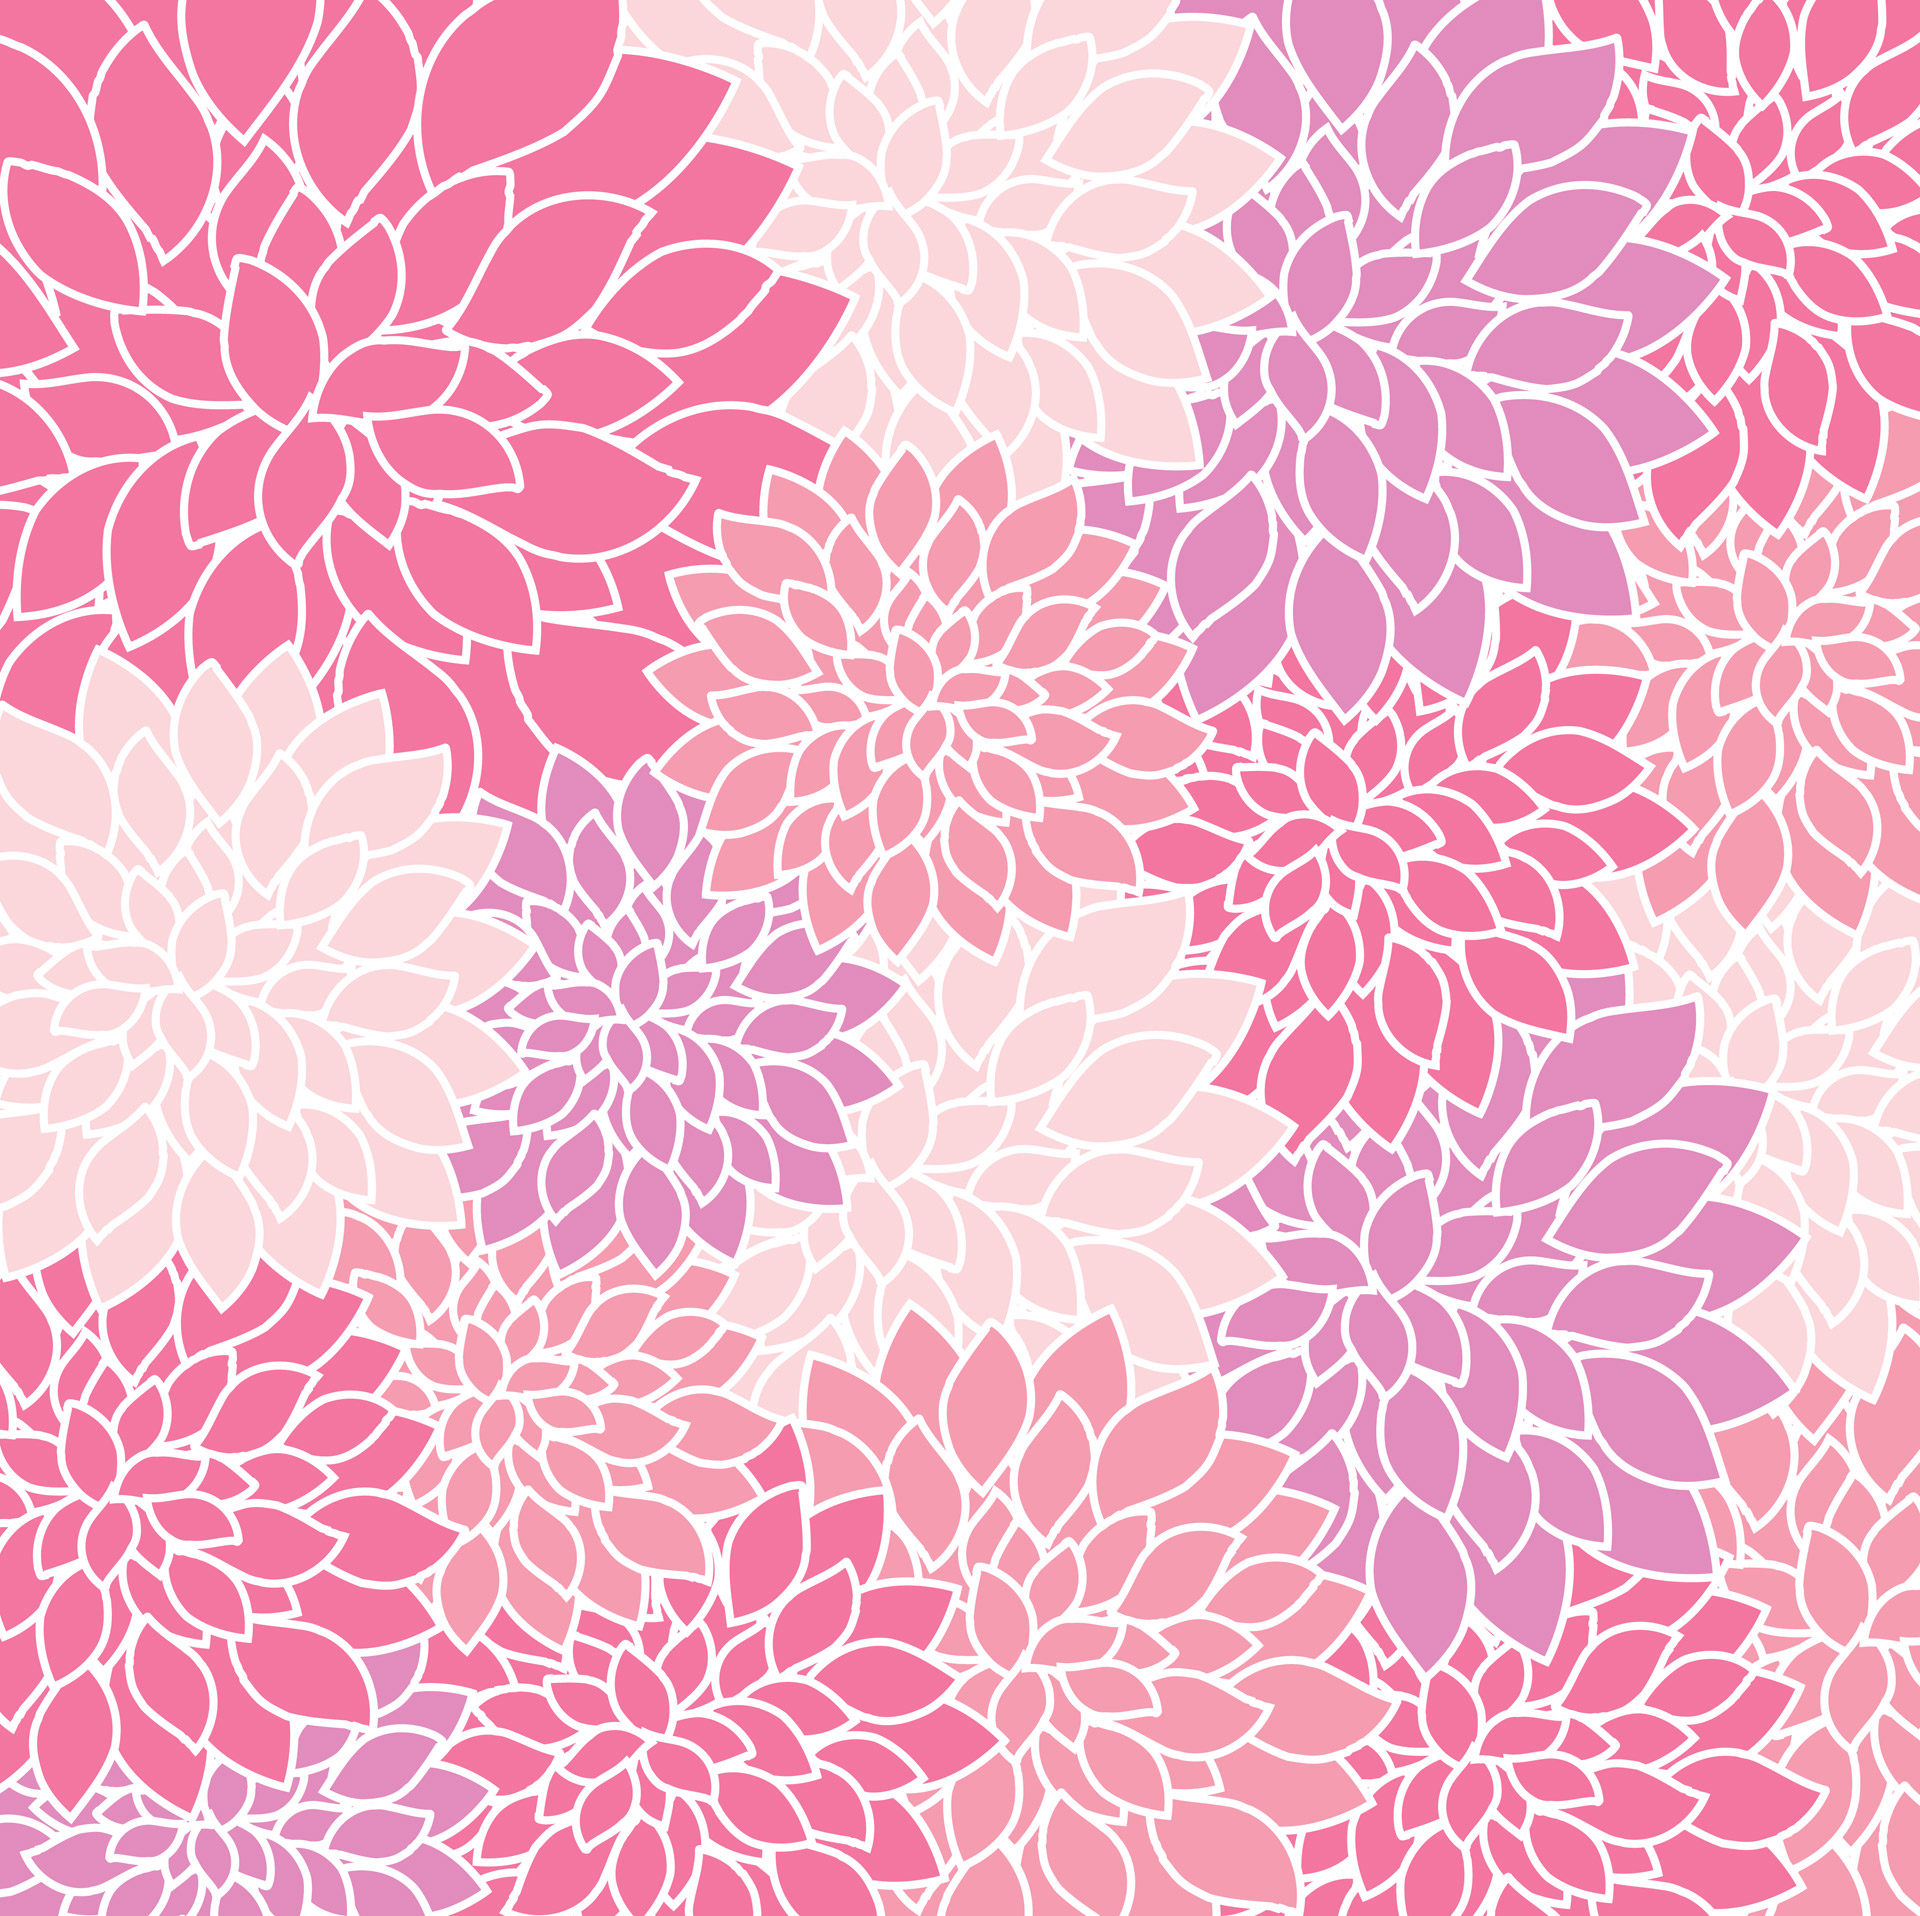 Seamless Watercolor Floral Pattern On A White Background Download